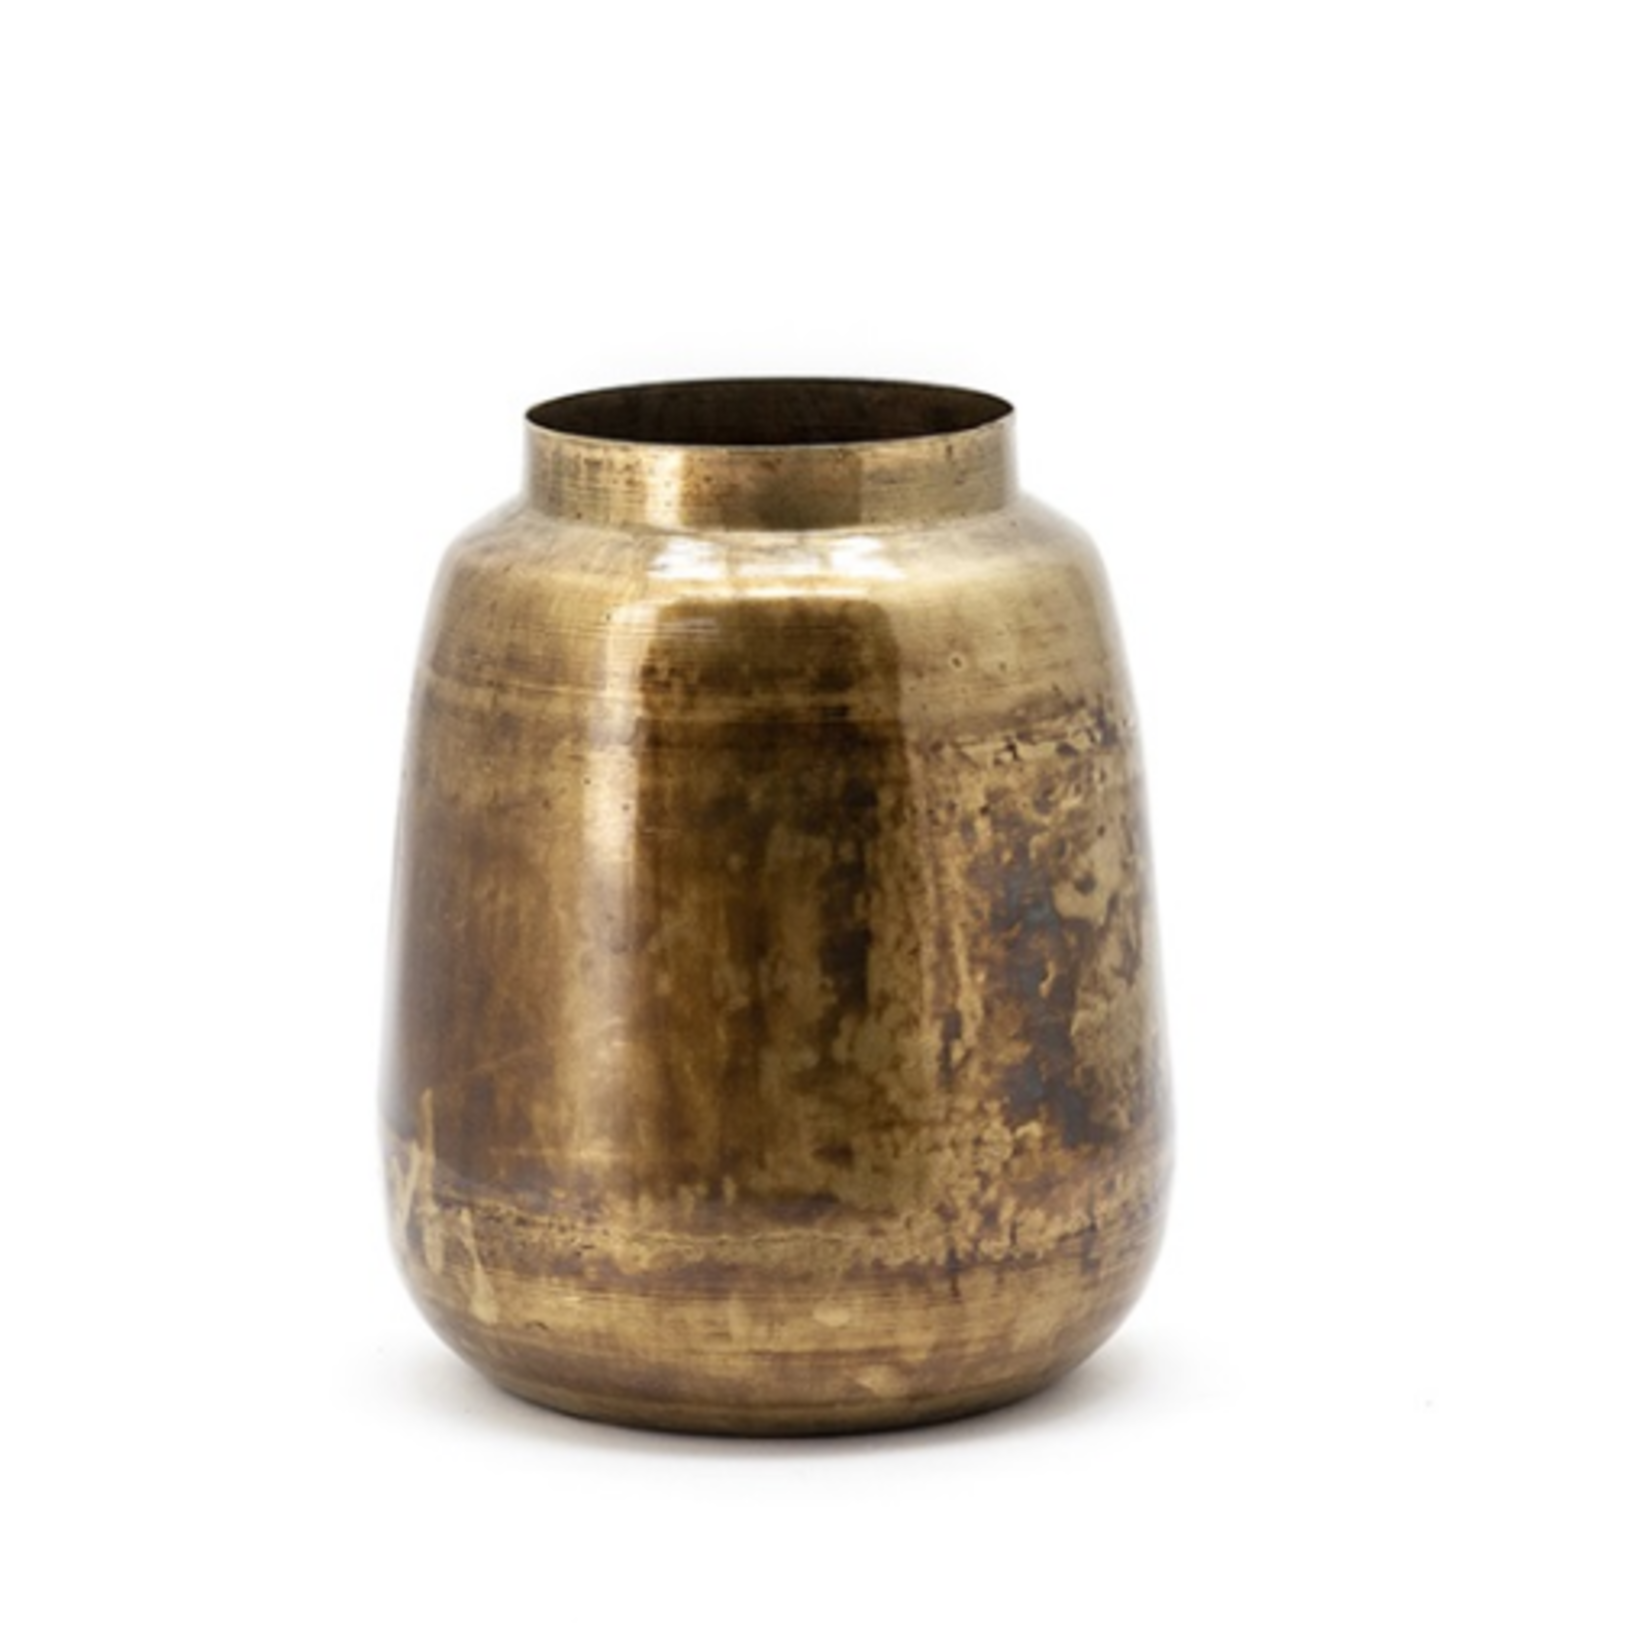 By Boo By Boo The Nile Vase 2 - gold